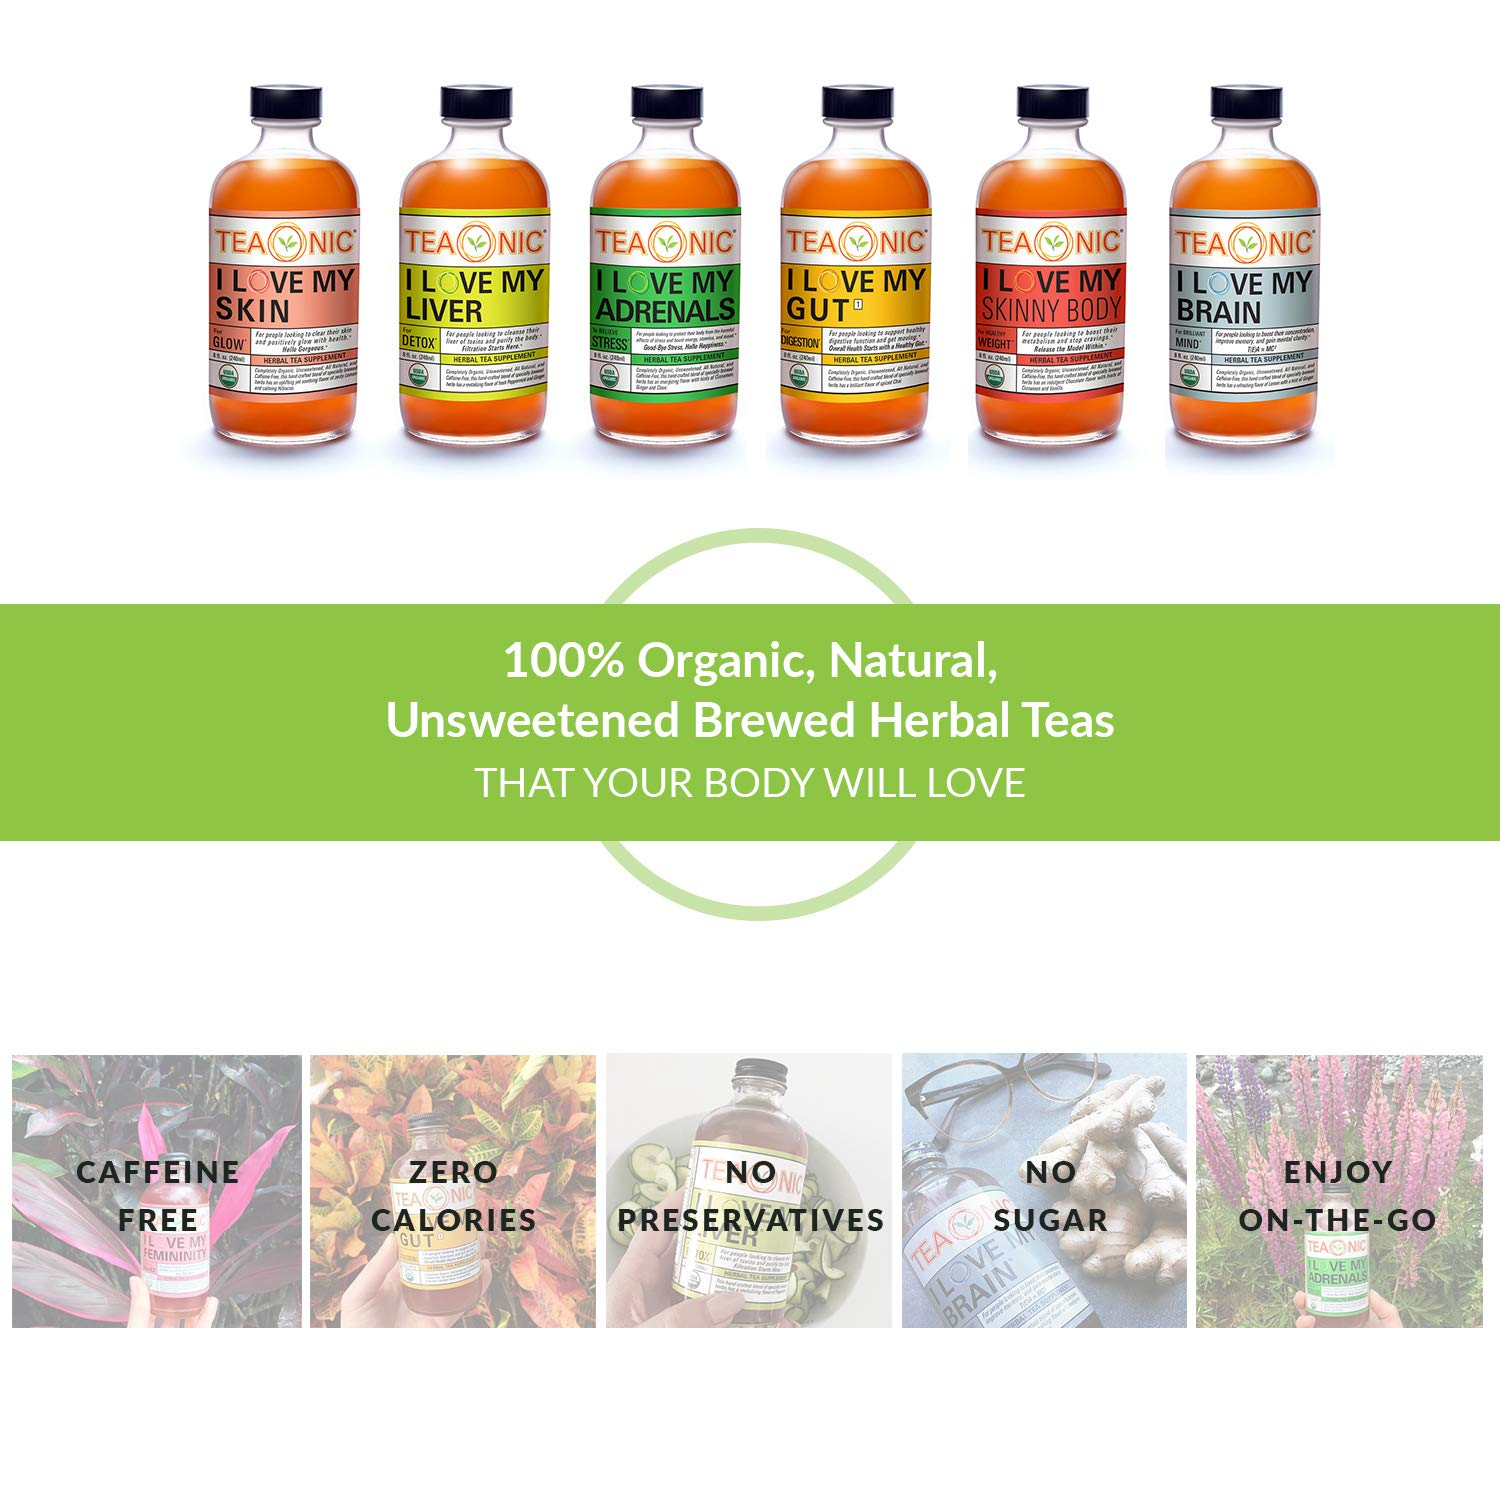 Teaonic Herbal Tea | I Love My Skin for Radiant Glow | Zesty Hibiscus & Lemongrass (12 Pack) by Teaonic (Image #6)